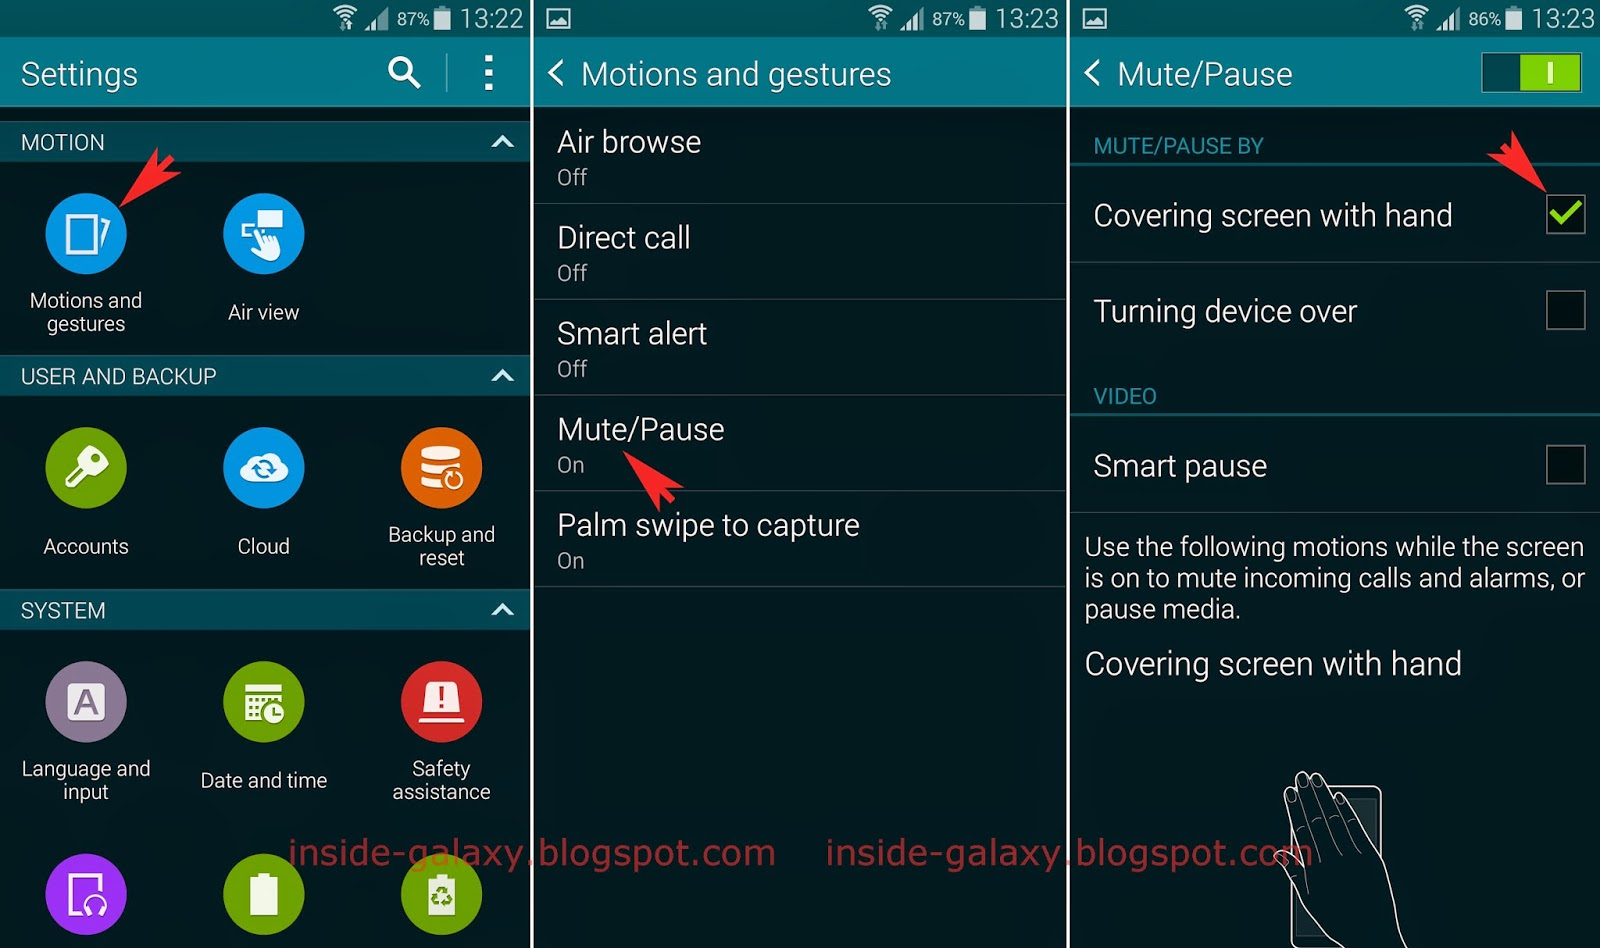 Samsung Galaxy S5: How to Enable and Use Cover to Mute/Pause